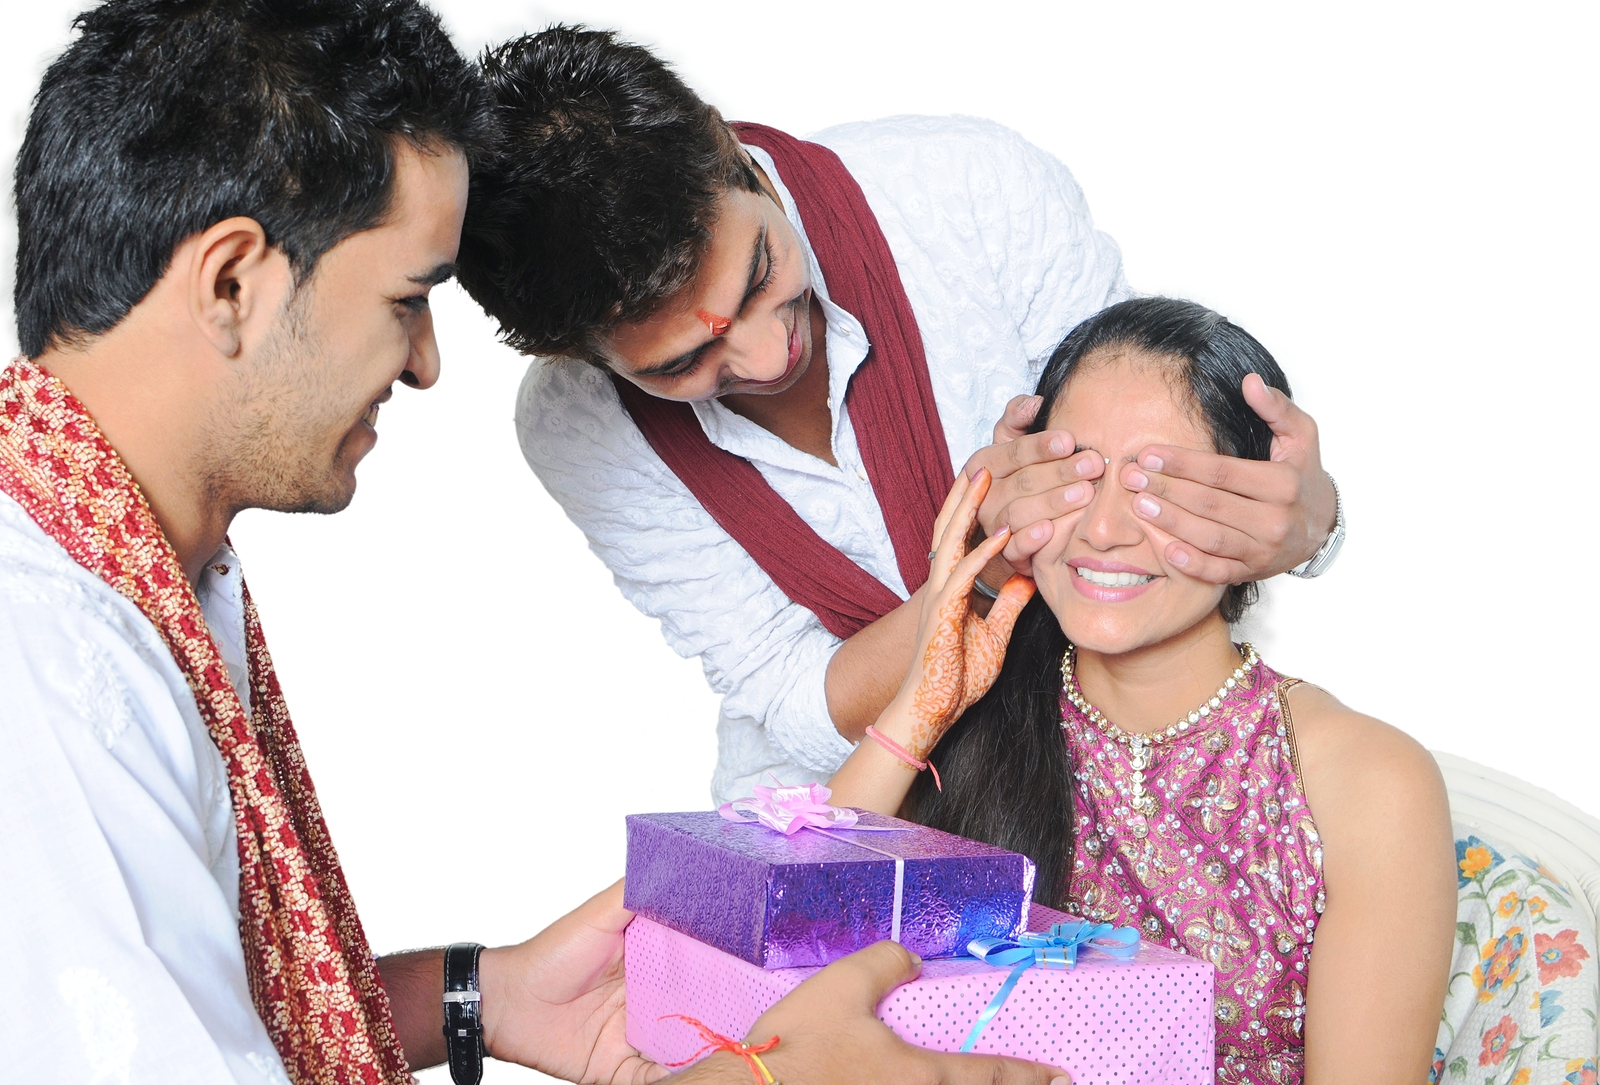 Two brothers giving surprise gift to their sister on festival.